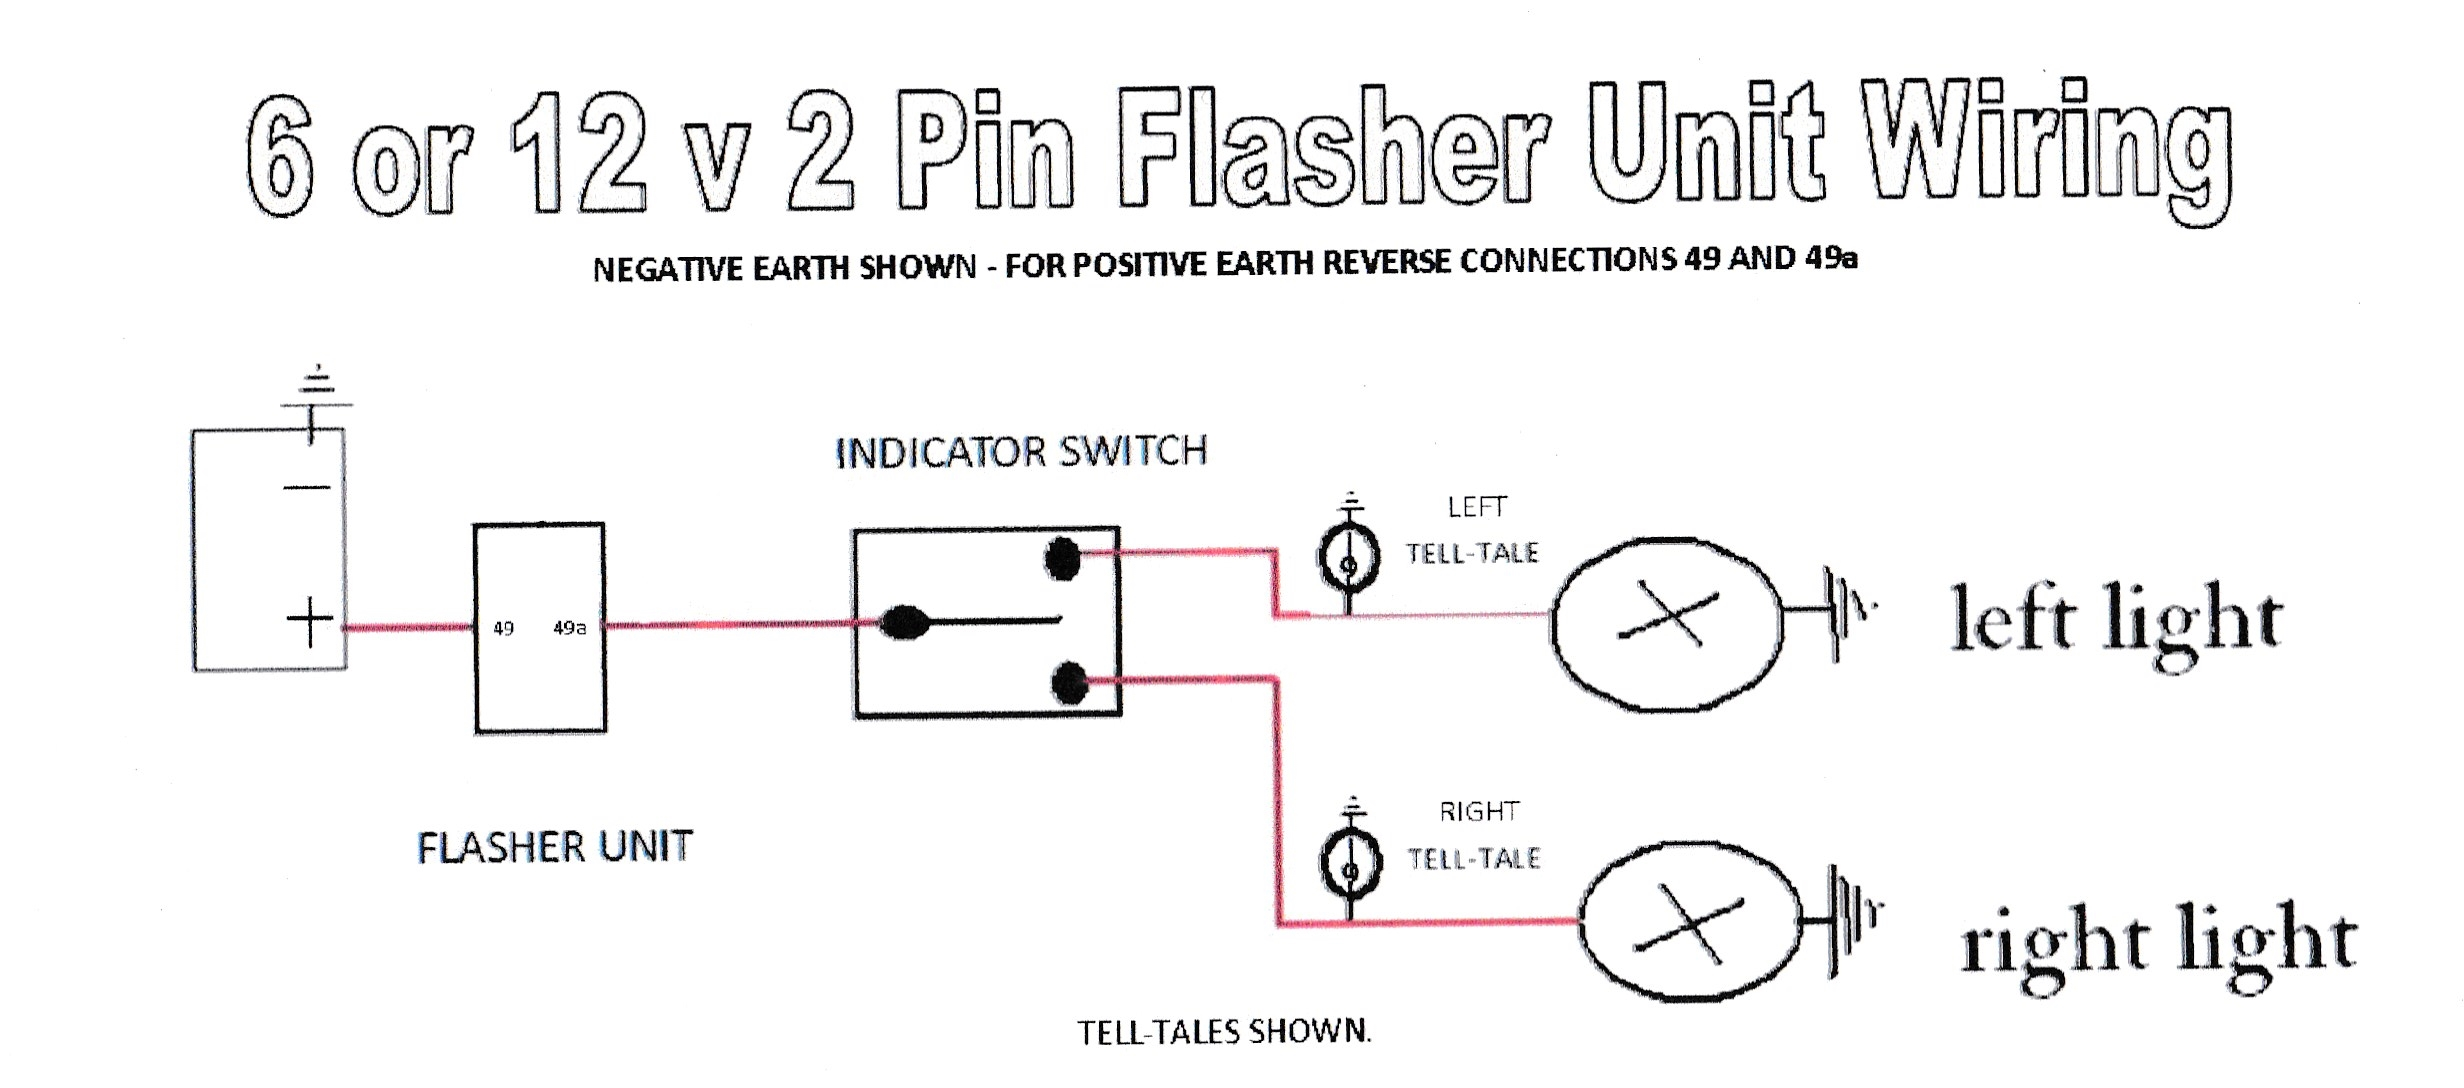 led flasher wiring wiring diagram third level3 wire led flasher simple wiring diagram flasher relay diagram 2 terminal flasher wiring wiring diagrams